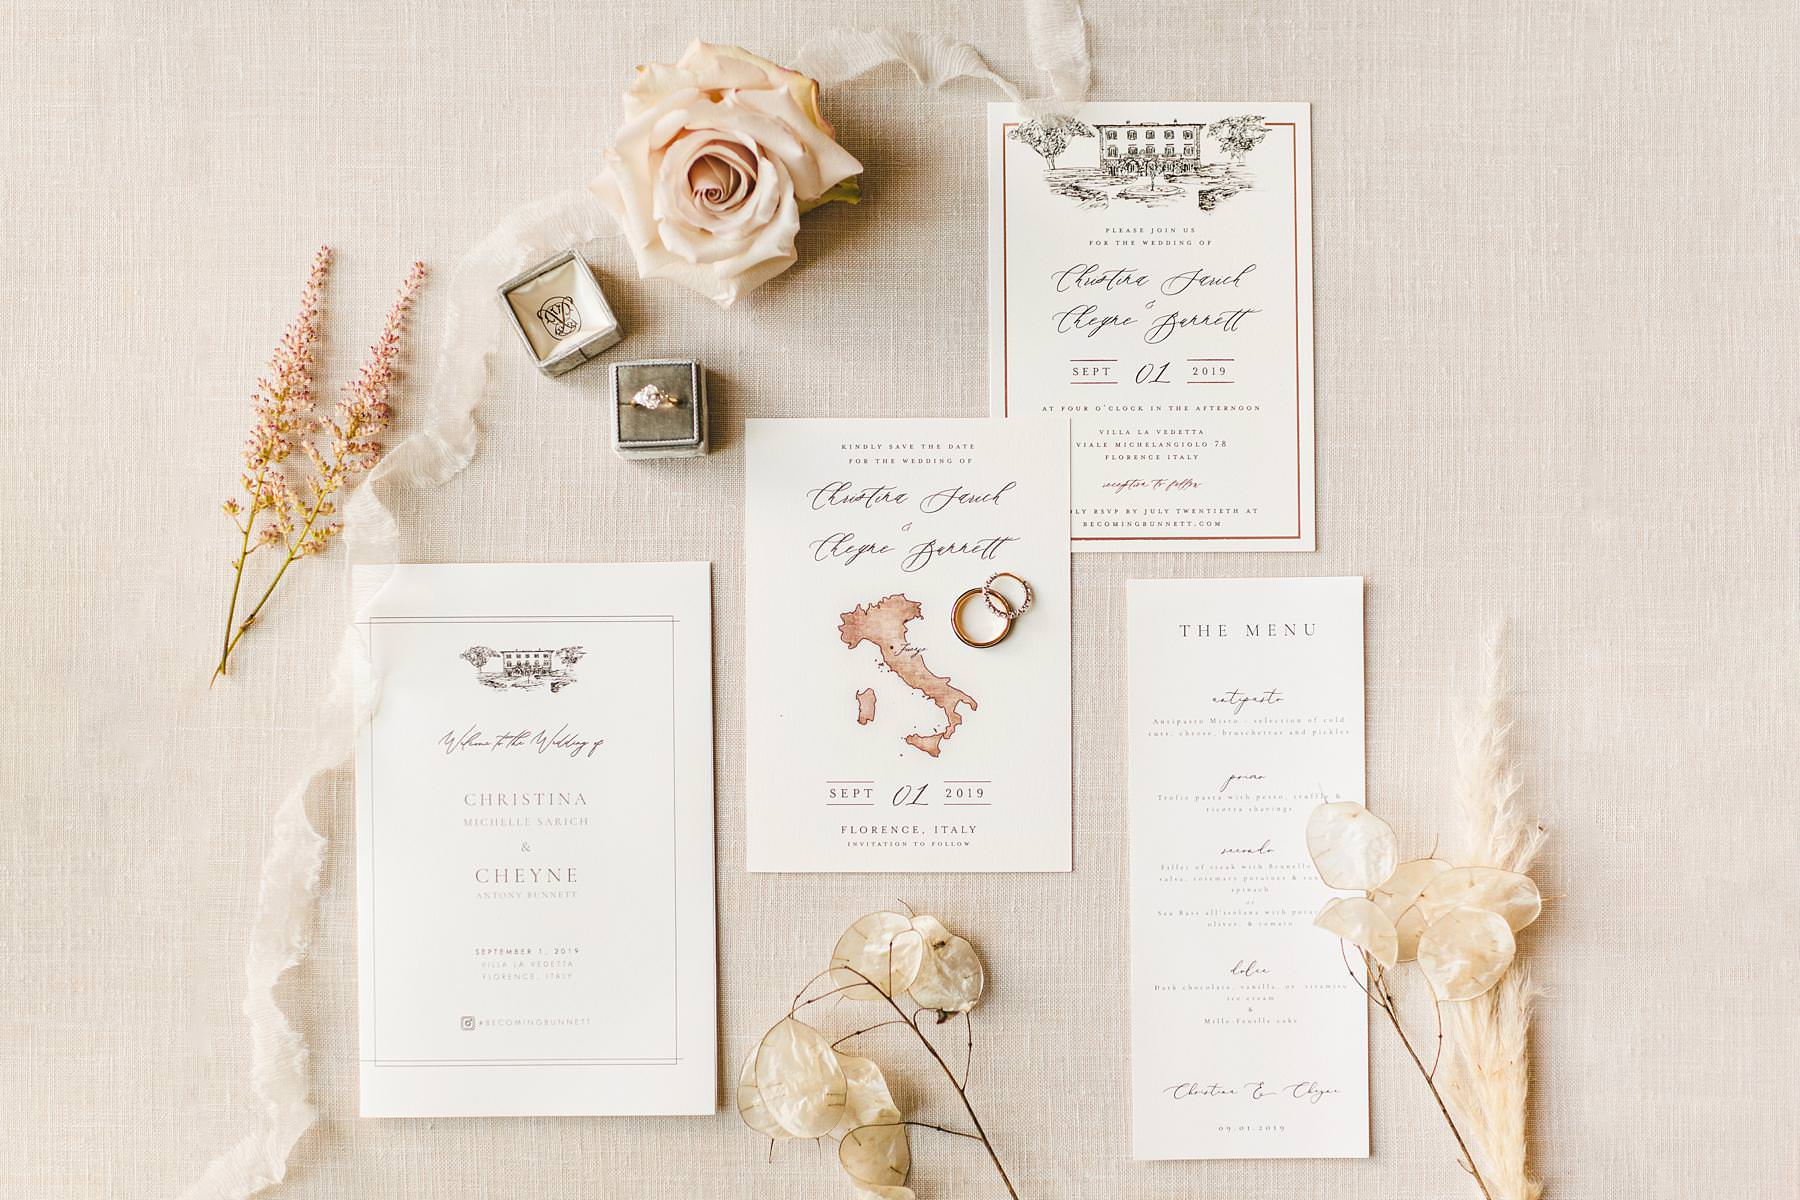 Celebrate the most important day of your life at Villa La Vedetta, Florence. Elegant destination wedding stationery details